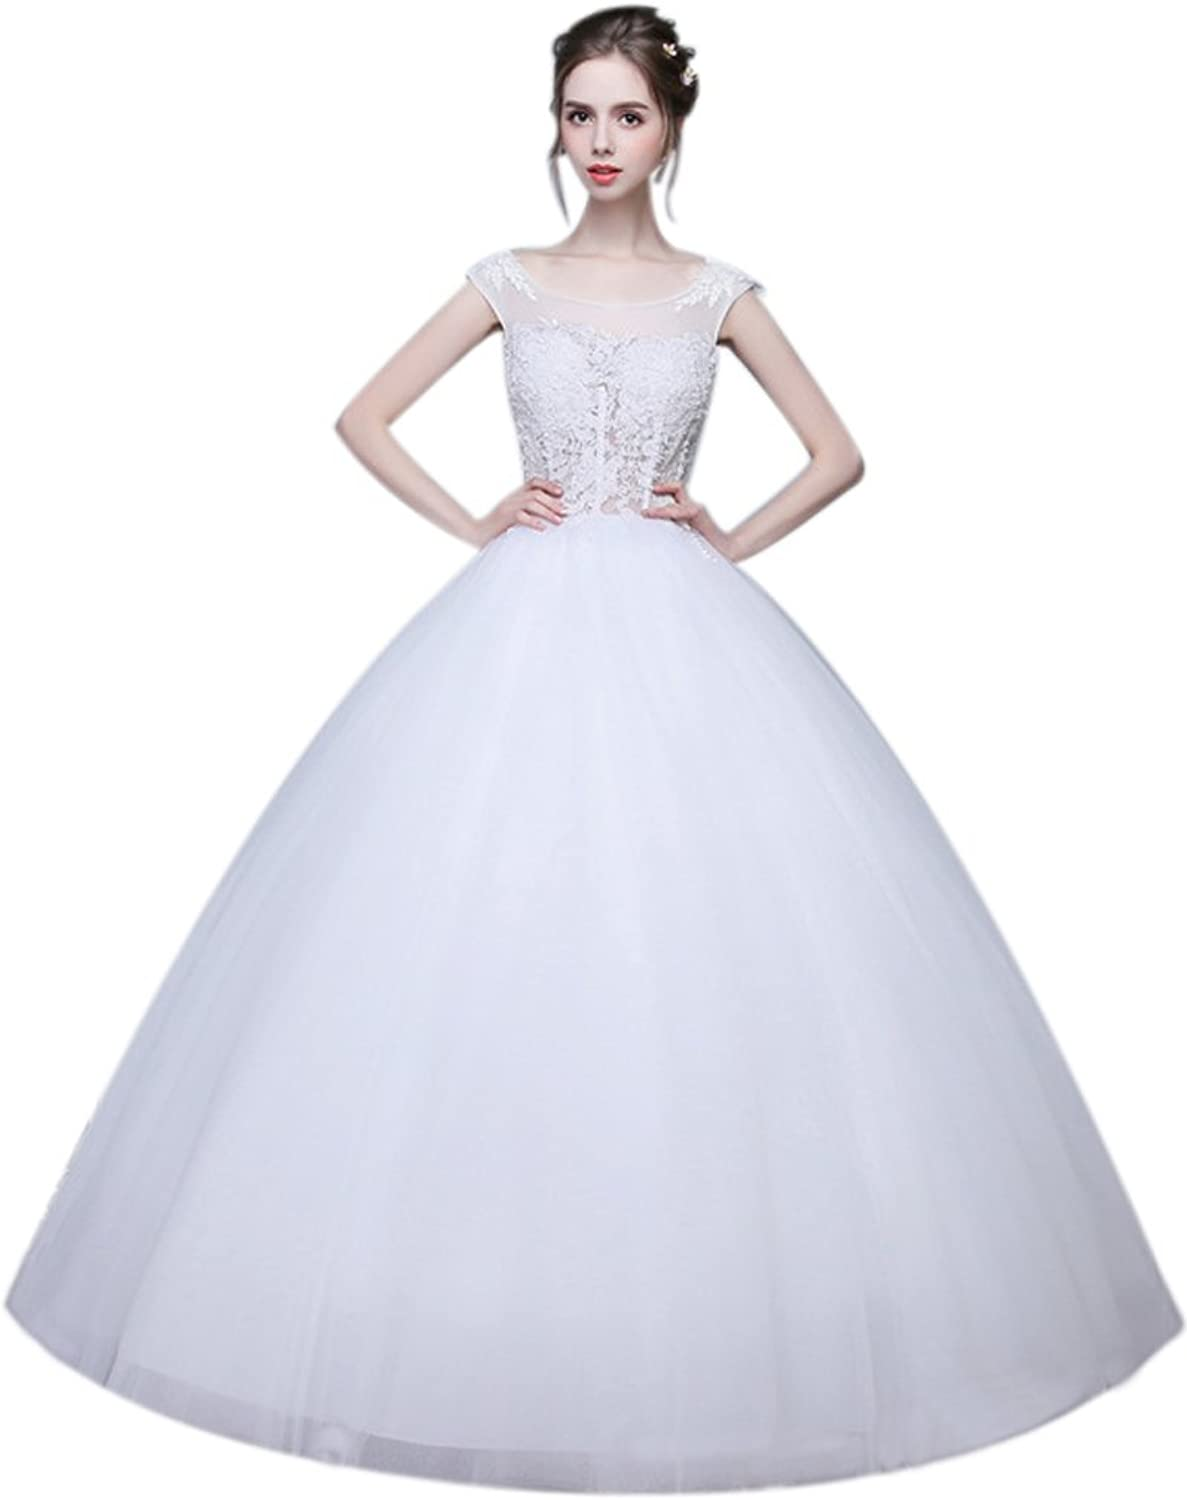 Shanghai Story Double Shoulder Hollow Out Bridal Gown Wedding Dresses